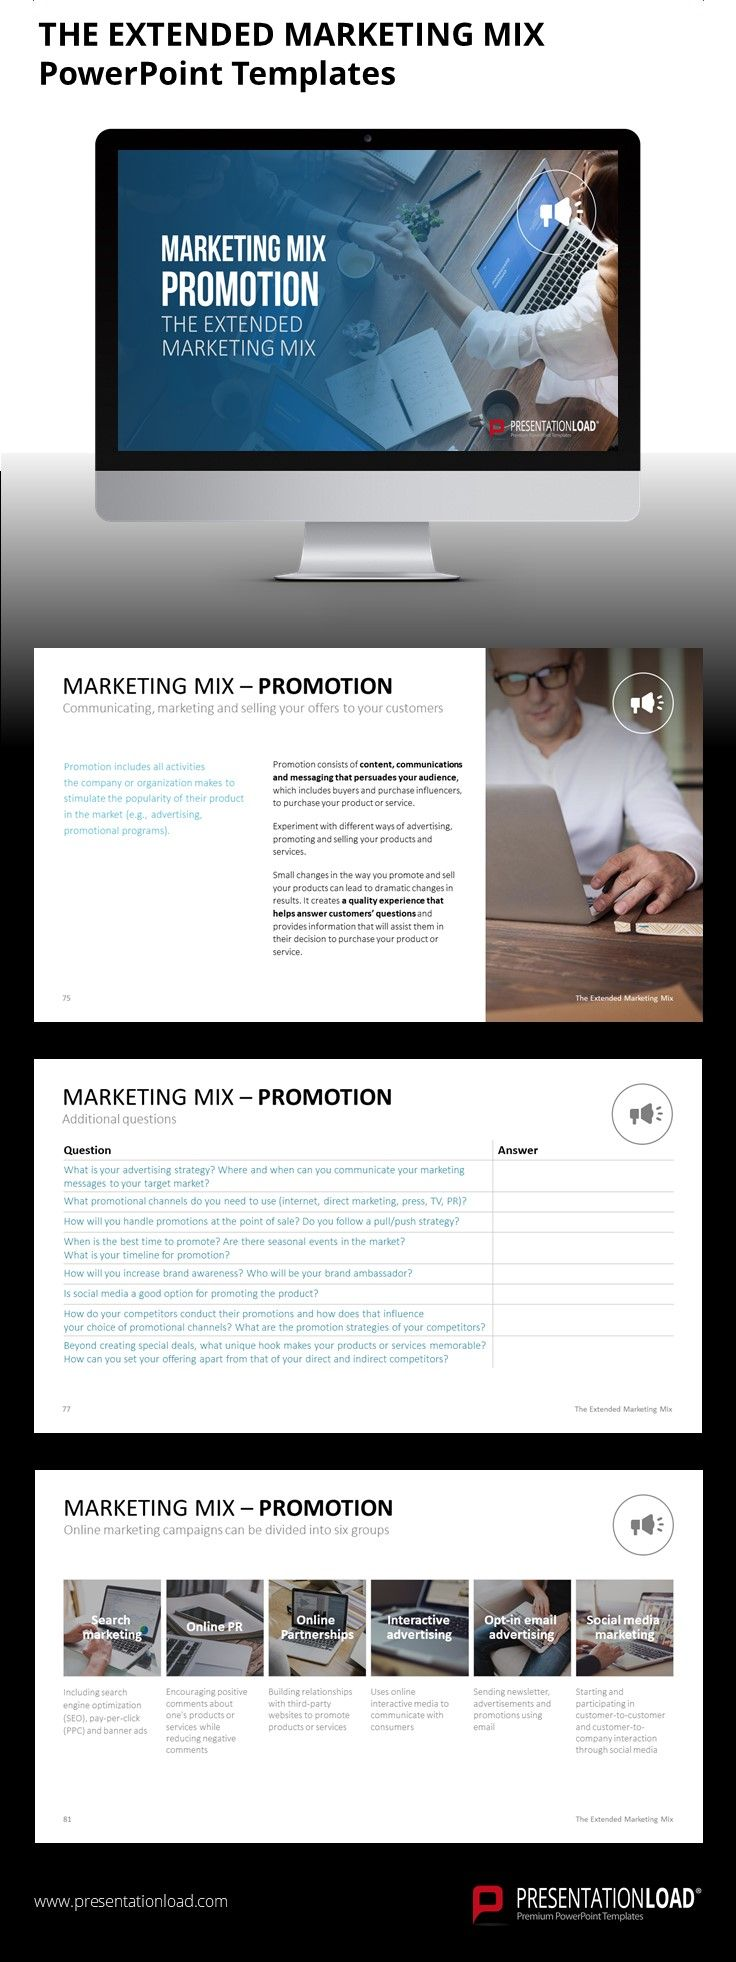 The Extended Marketing Mix Marketing Mix Powerpoint Templates Powerpoint